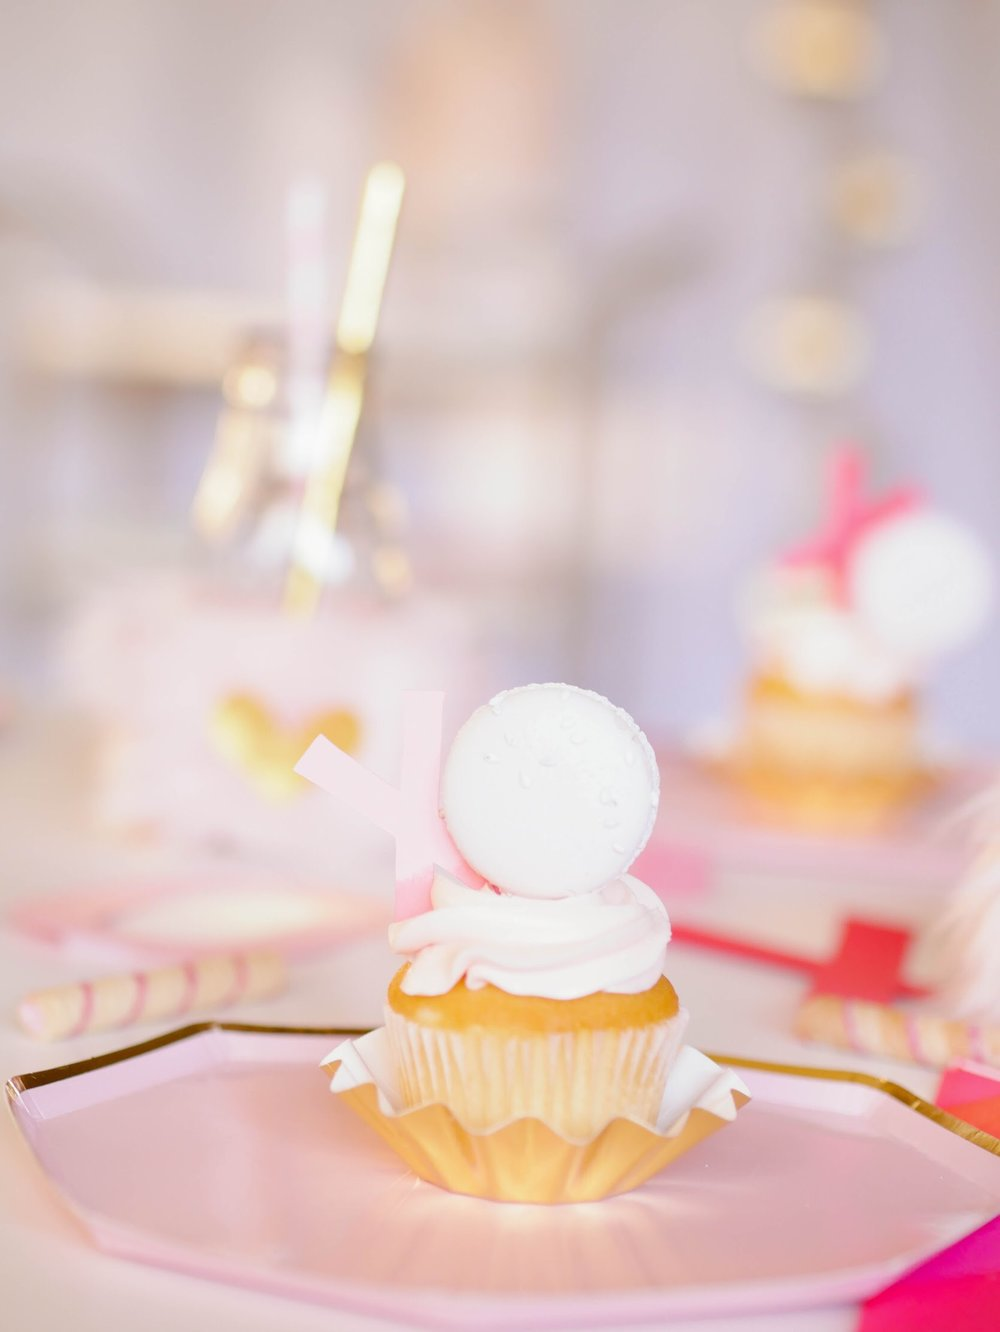 Cupcake toppers combine with Macarons to create a super sweet treat